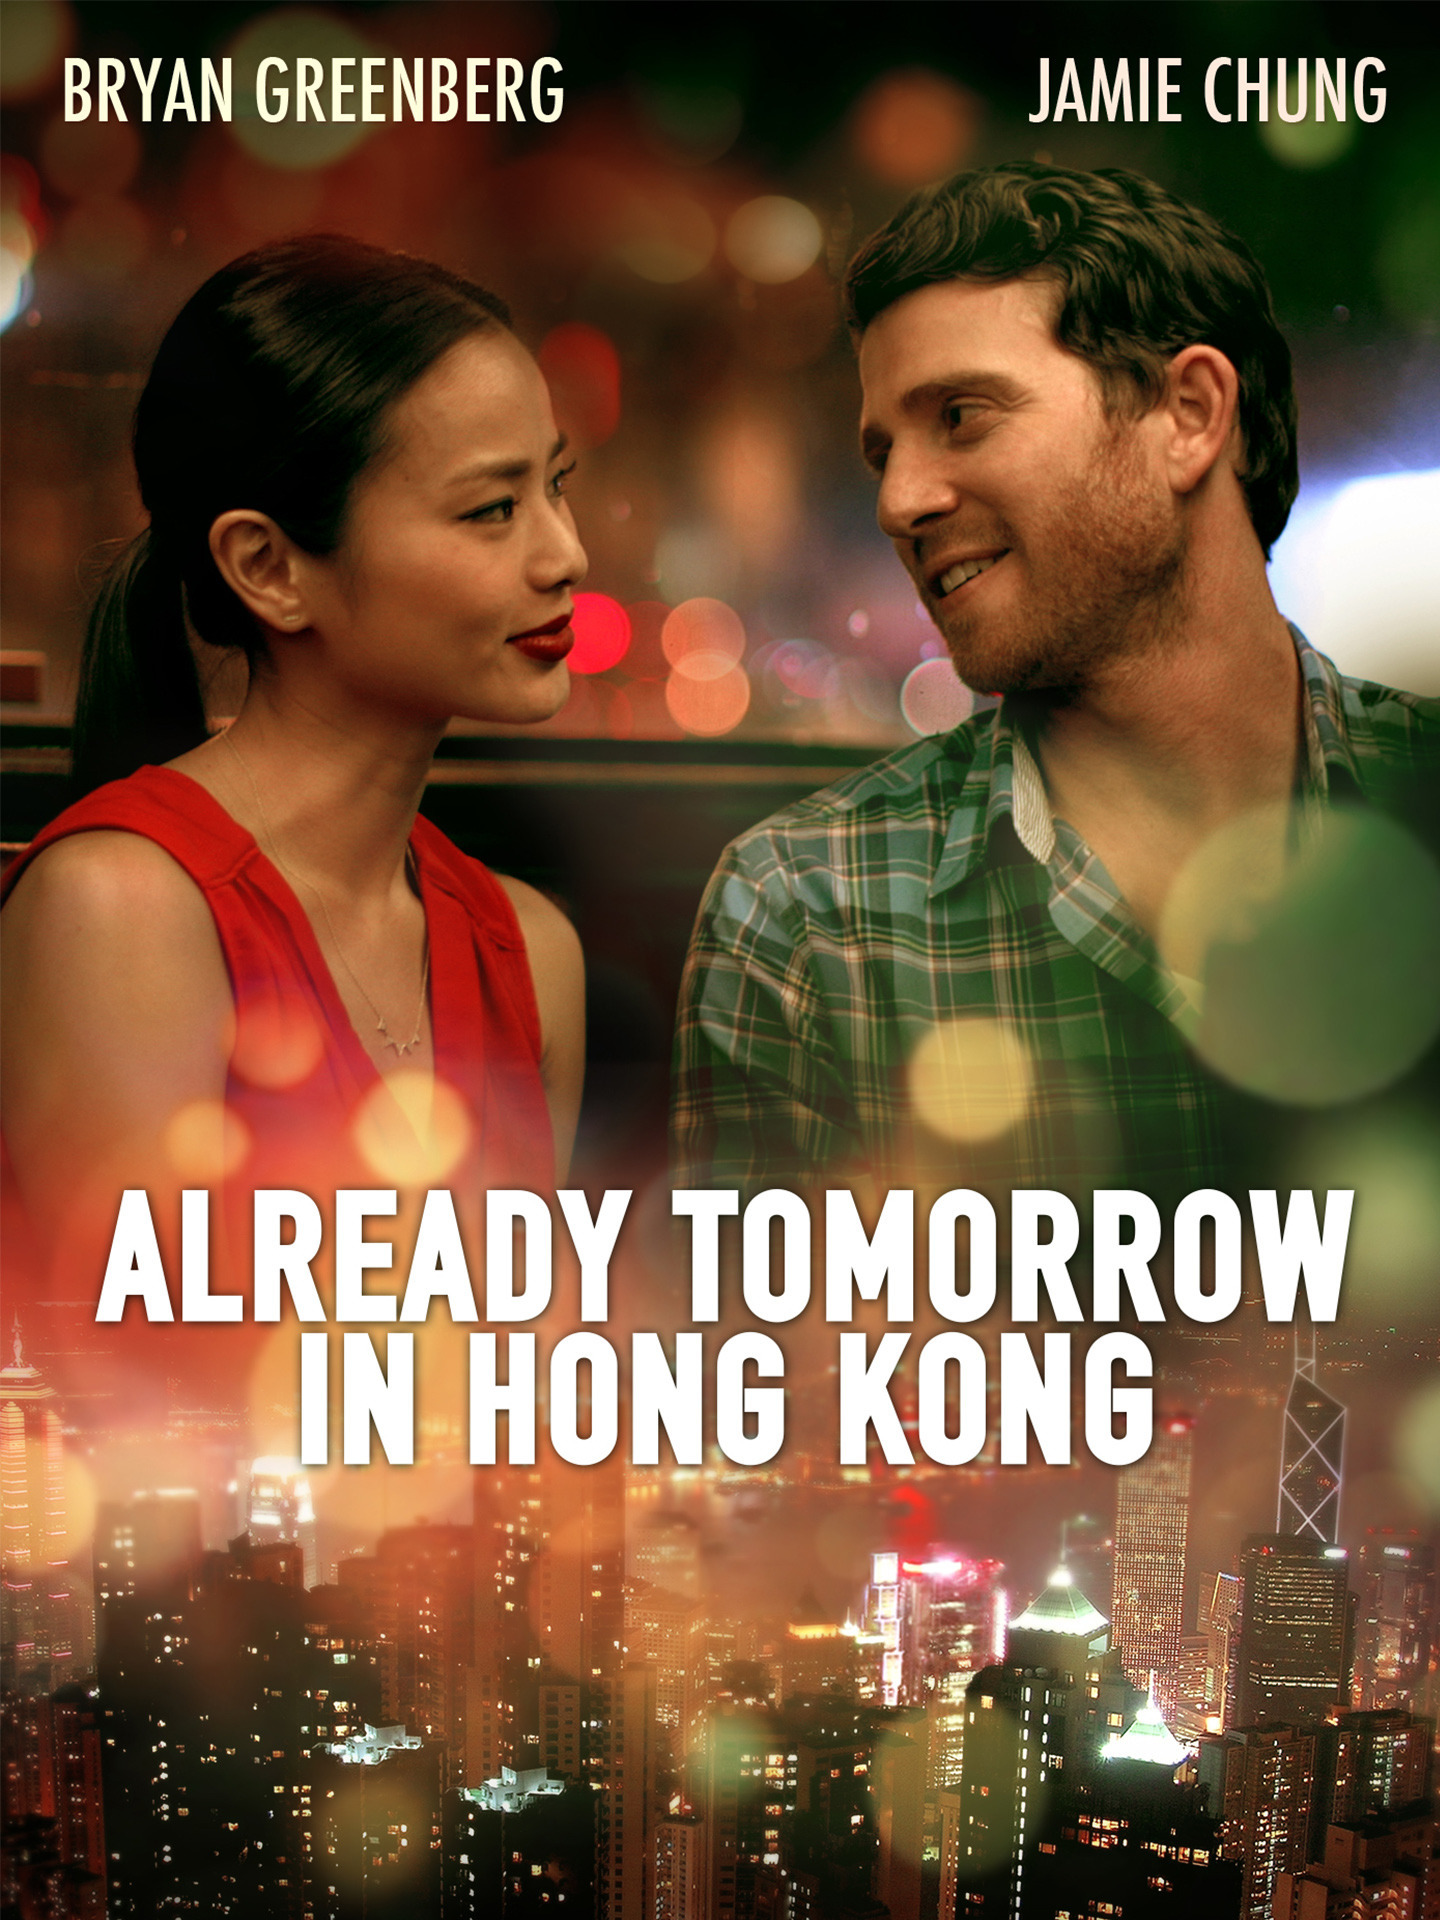 Already tomorrow in Hong Kong